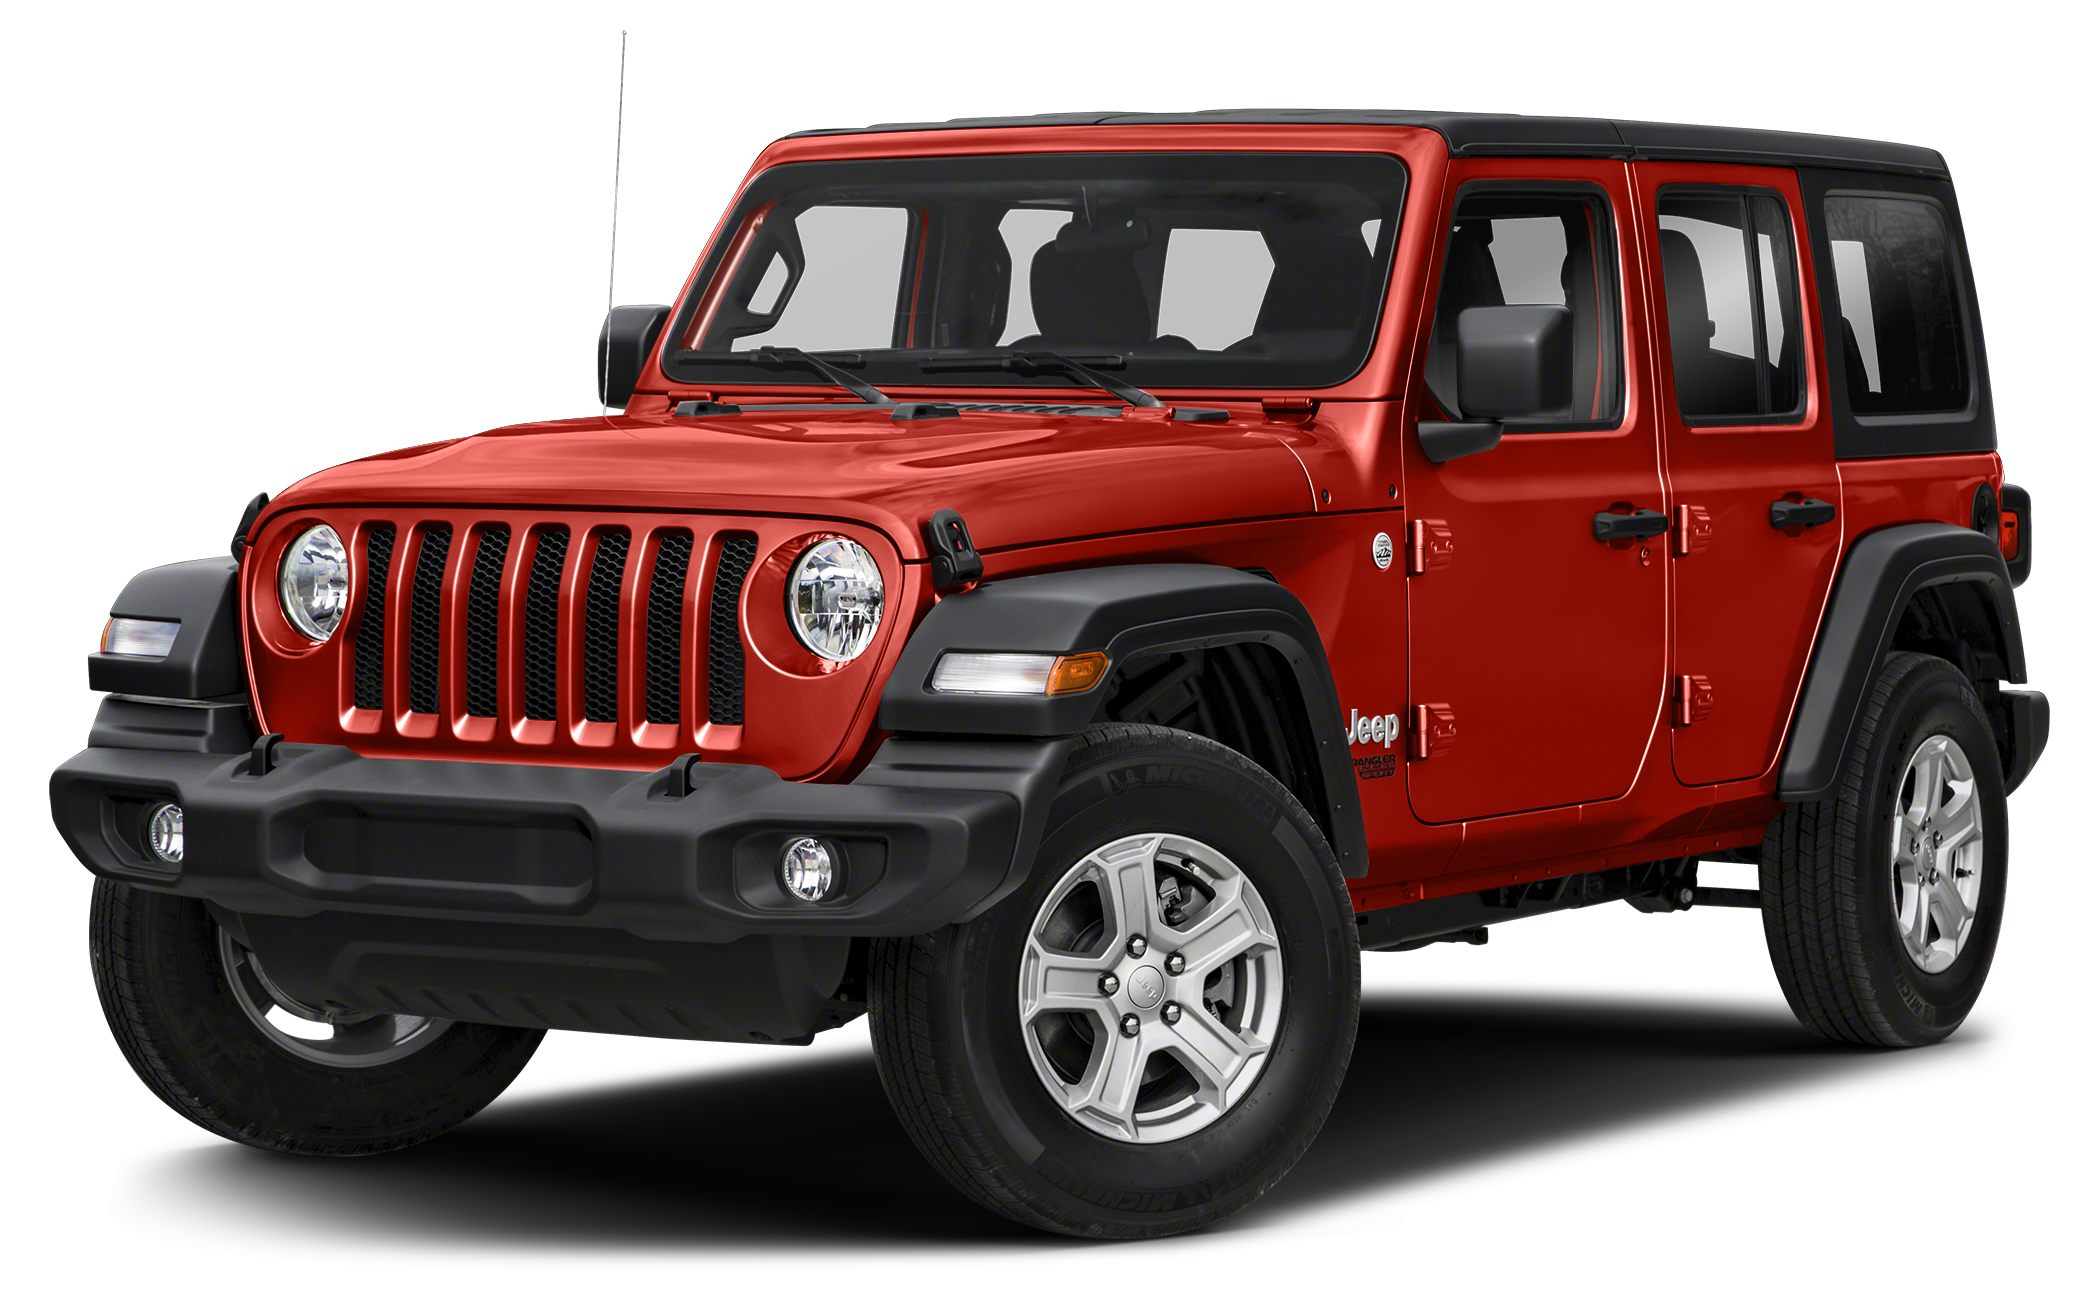 2018 Jeep Wrangler Unlimited Sahara Miles 5Color Firecracker Red Clearcoat Stock 80503 VIN 1